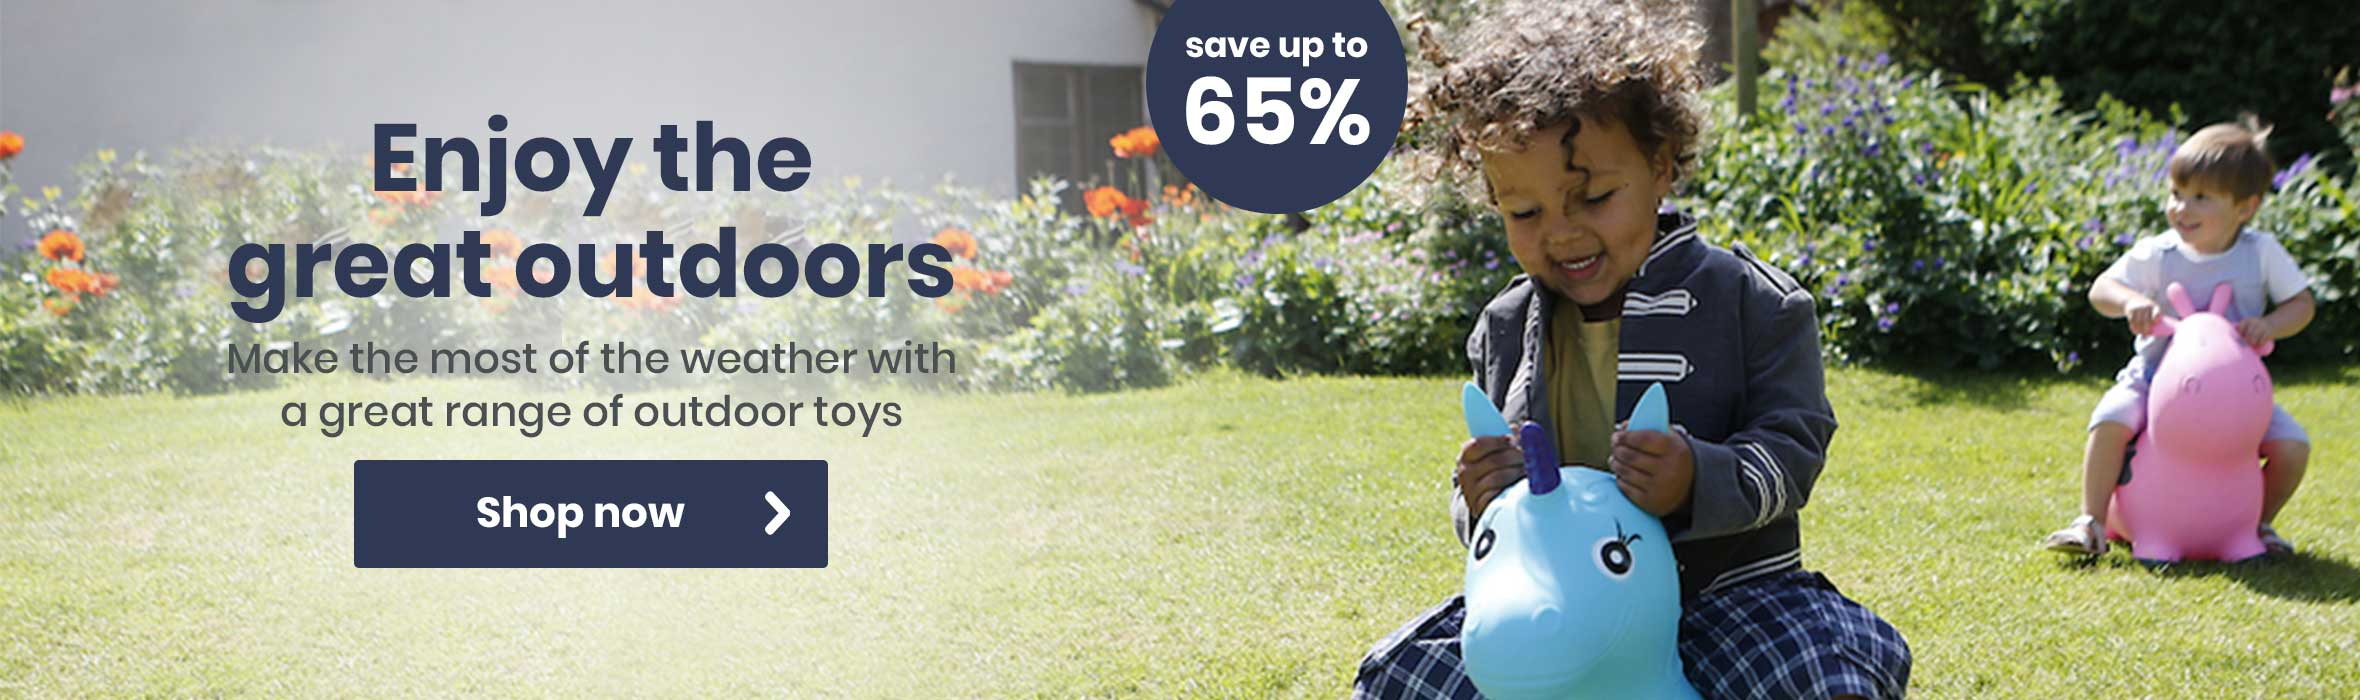 Enjoy the great outdoors and save up to 65%